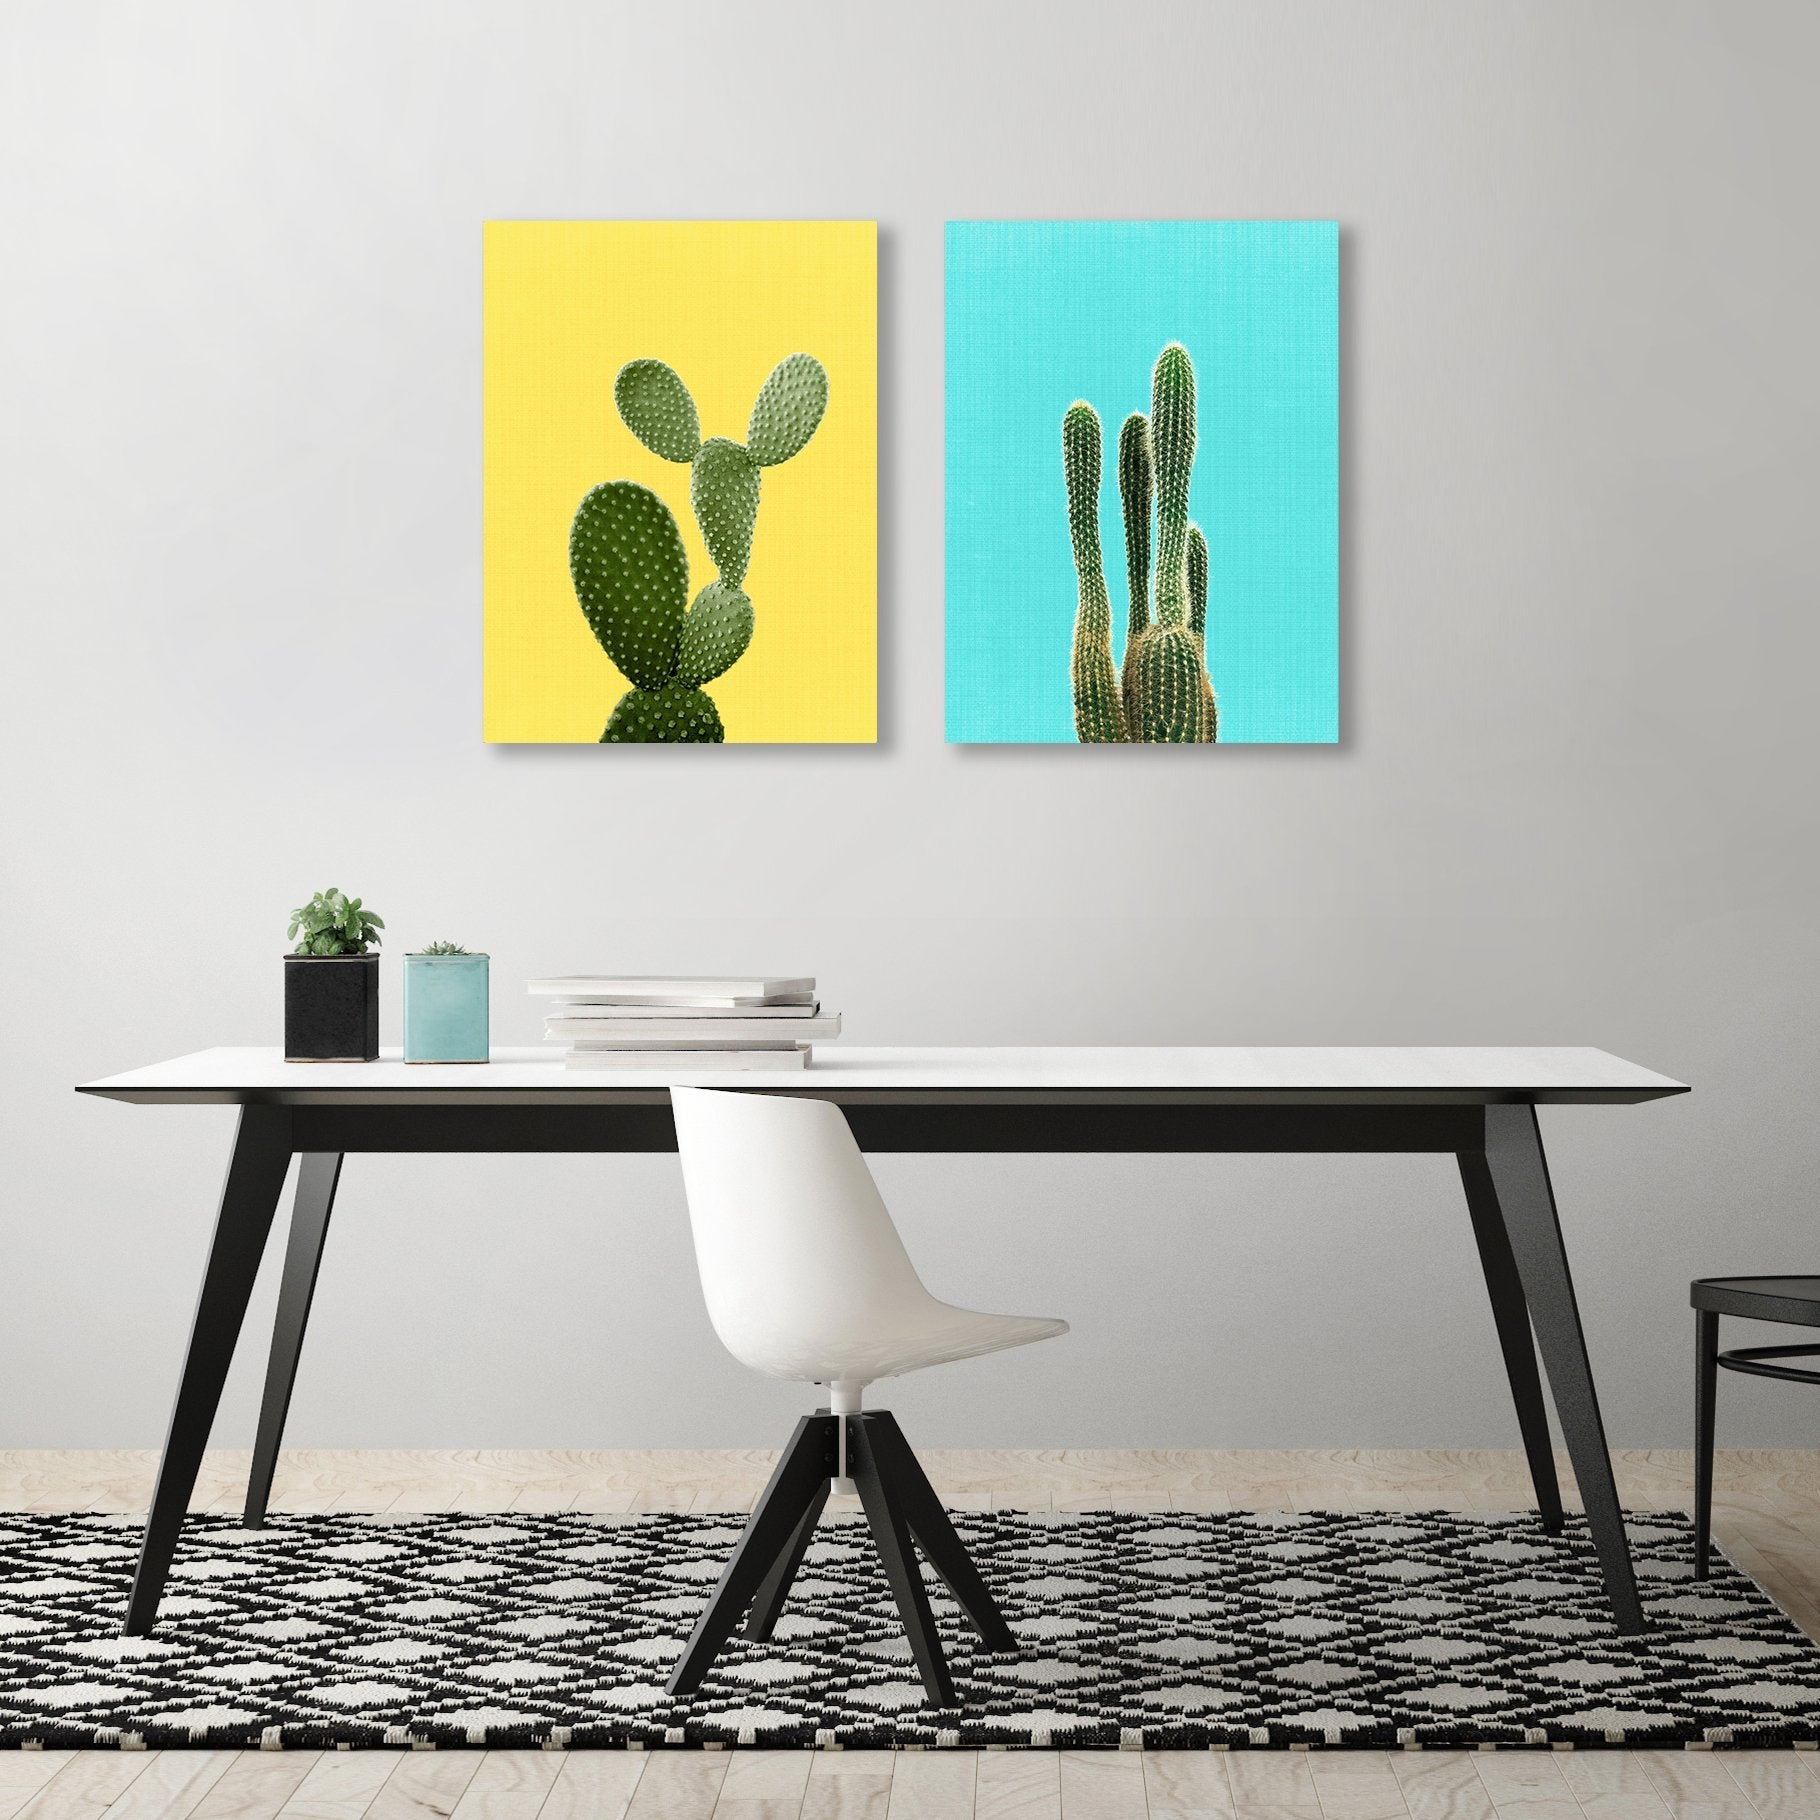 Cactus by LILA + LOLA  - 2 Piece Gallery Wrapped Canvas Set - Art Set - Americanflat